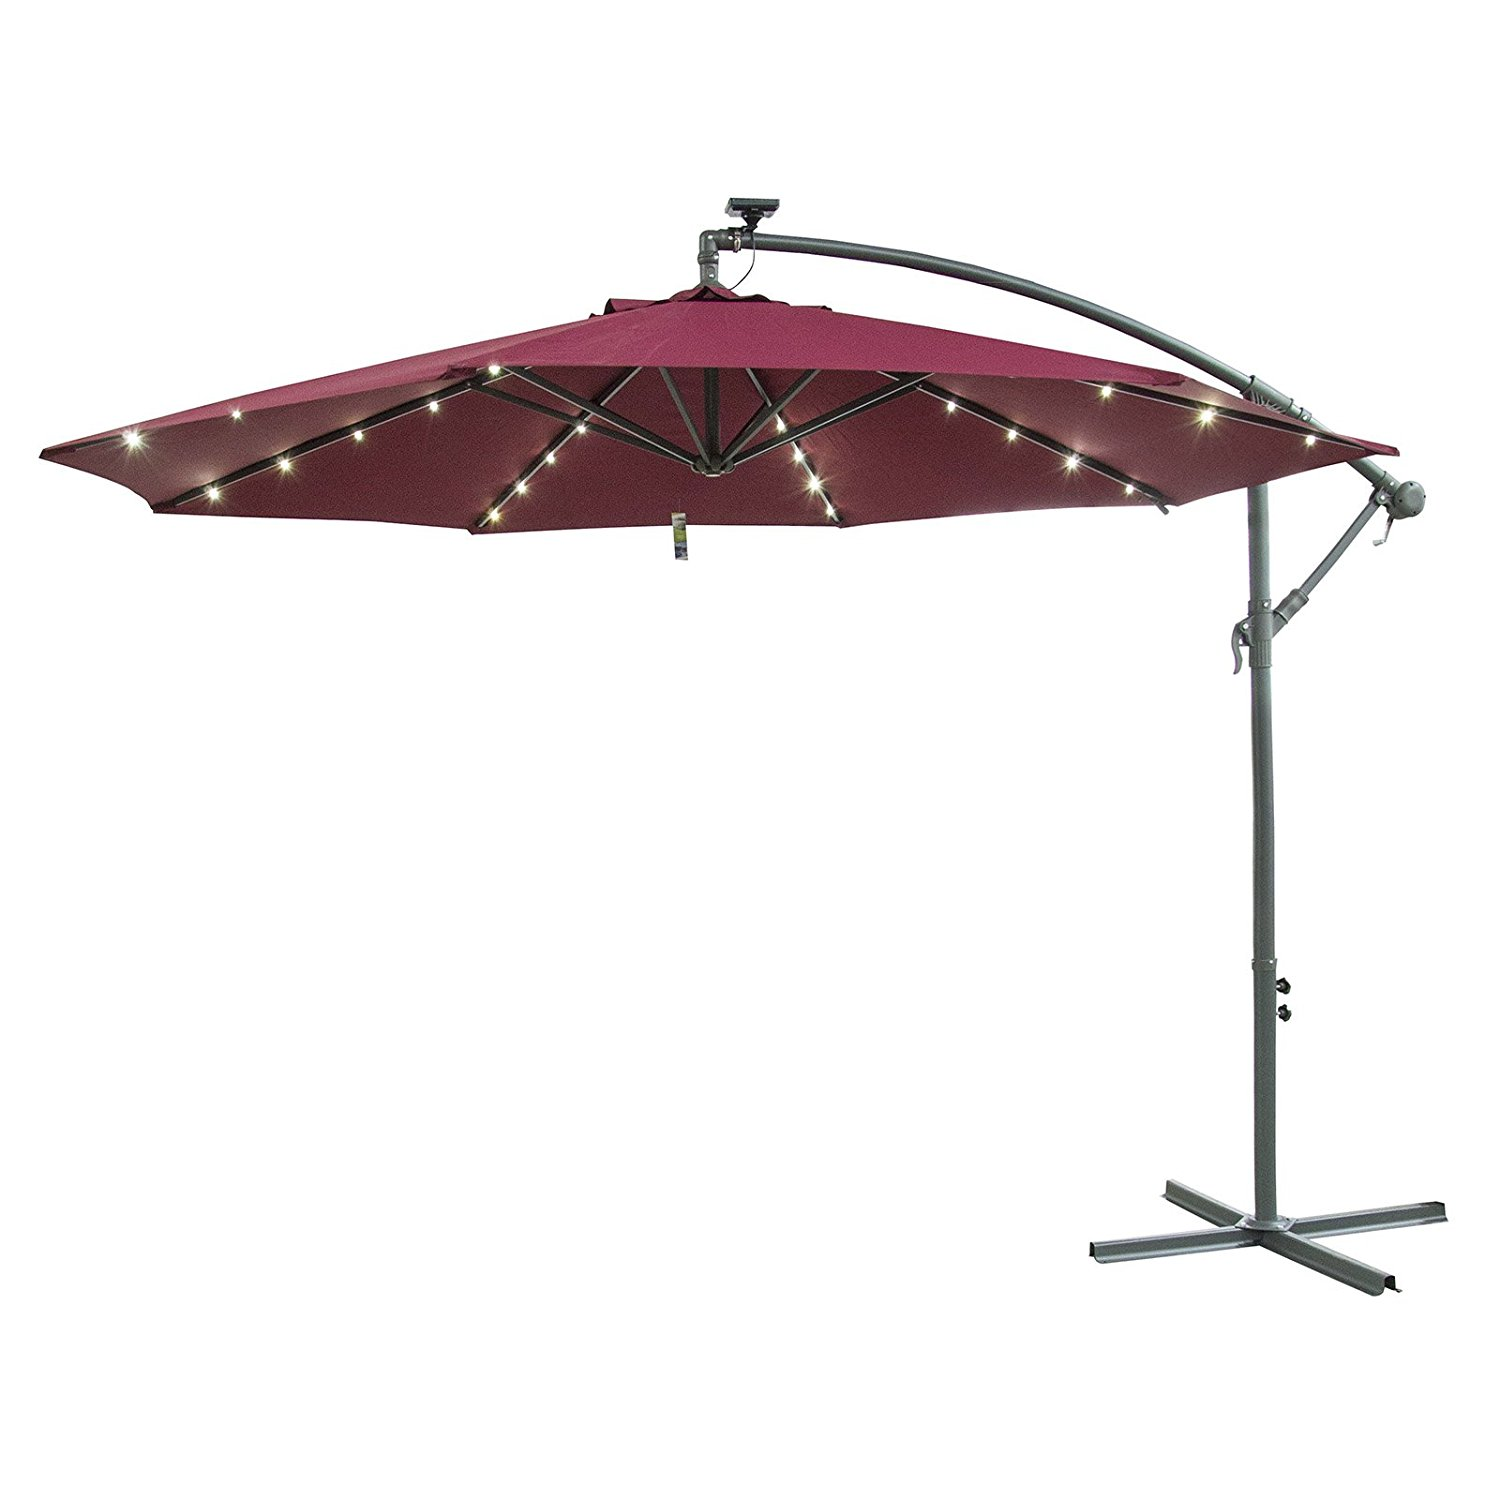 b two c case victor reg h lights light portable tungsten location product umbrellas kit umbrella lighting smith a with